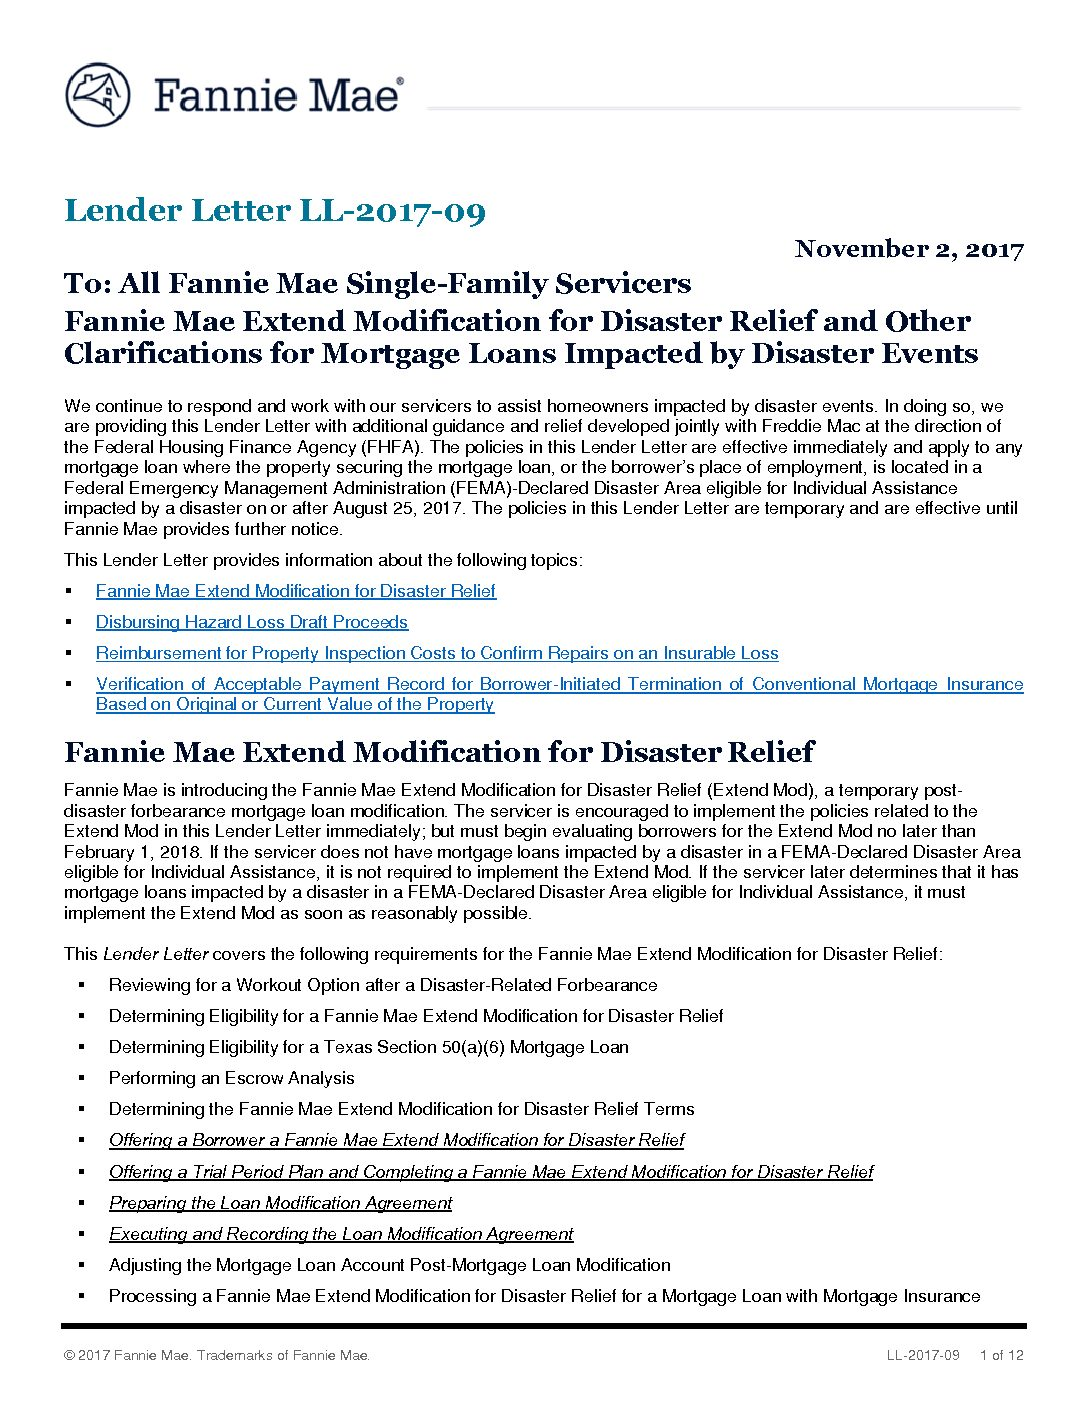 Click here to view the Fannie Mae Lender Letter LL-2017-09